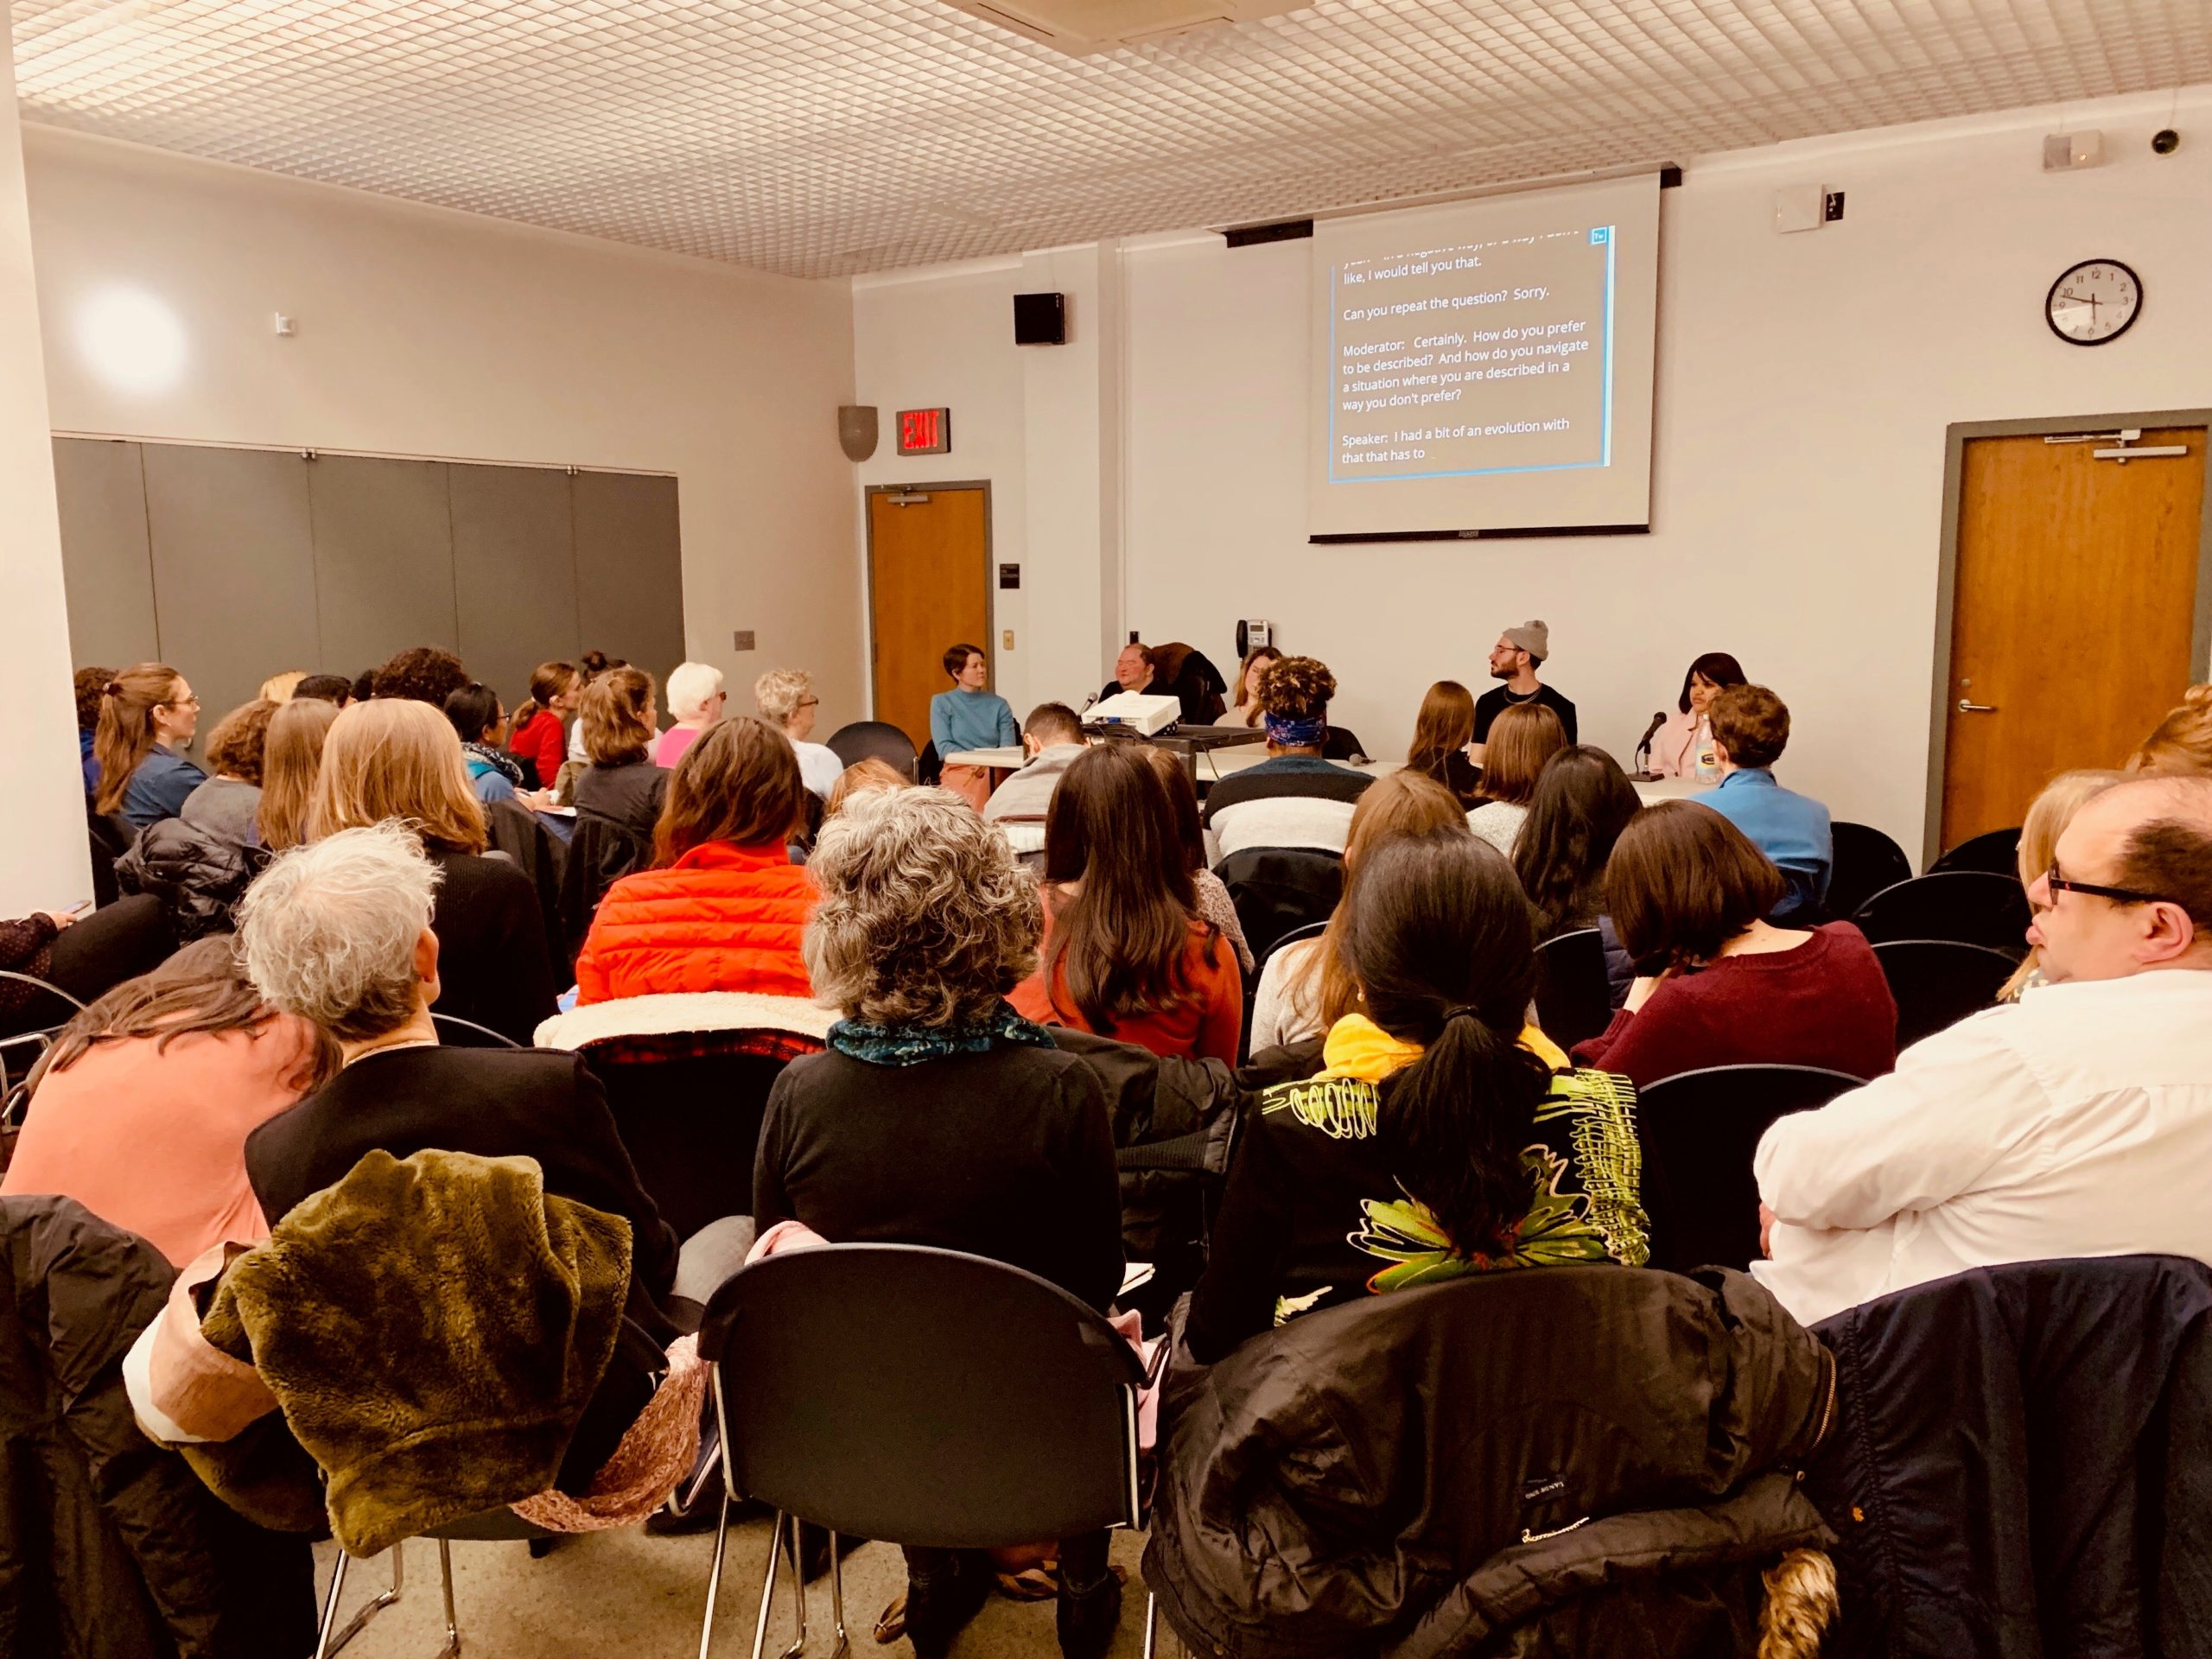 In the foreground an audience attends a panel conversation on mindful communication. Four panelists sit at a table in the background.